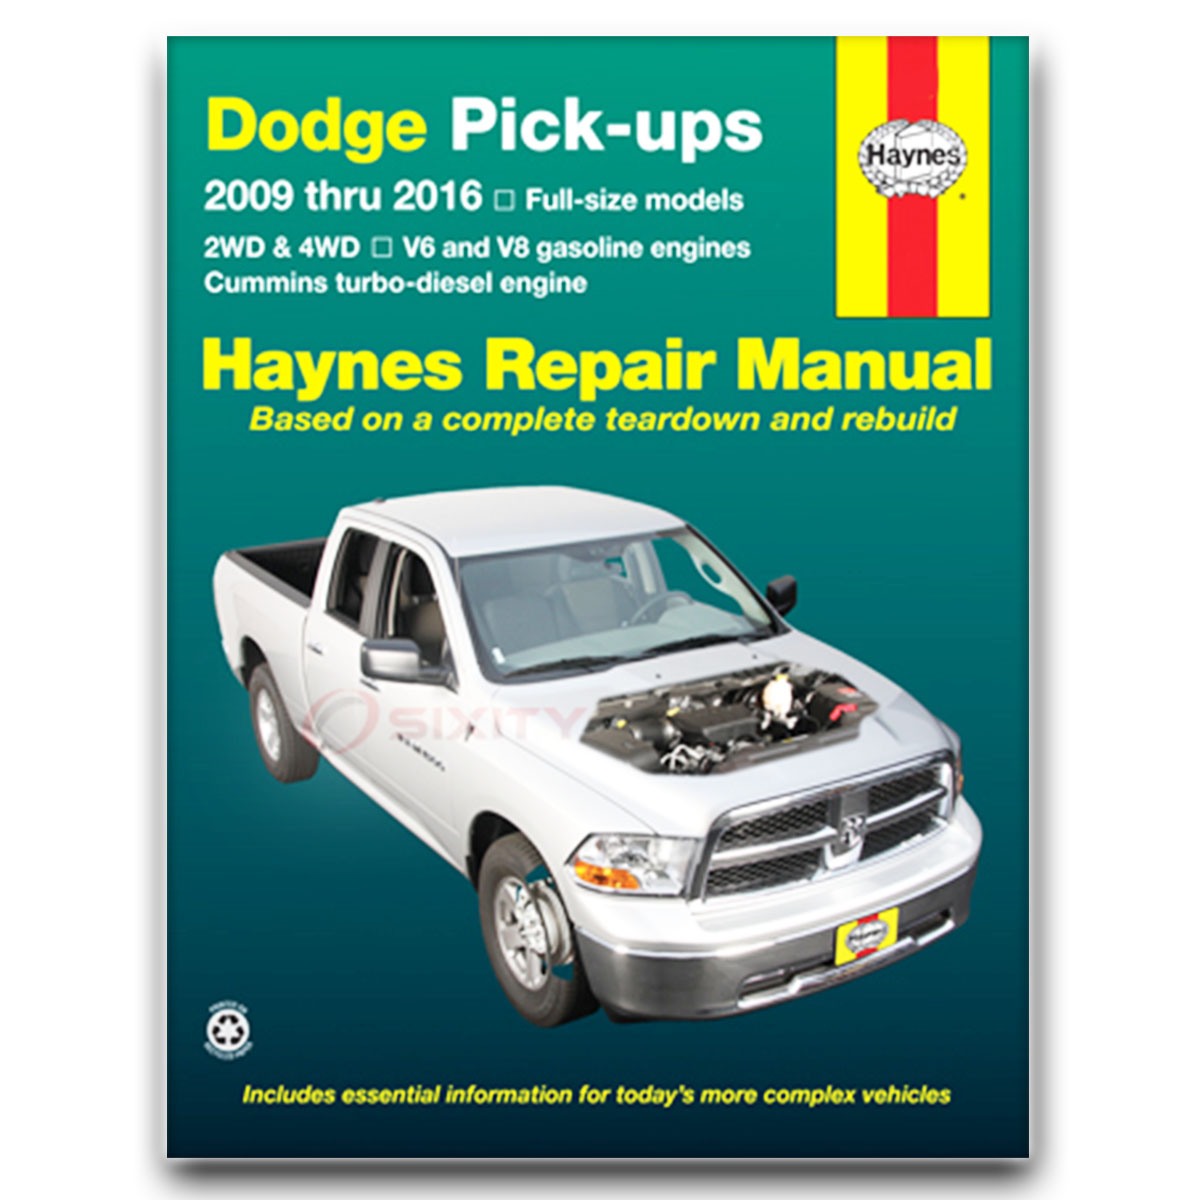 haynes repair manual for dodge ram 1500 laramie slt sport trx4 st rh ebay  com 2009 dodge ram 1500 repair manual download 2009 dodge ram 1500 haynes  repair ...